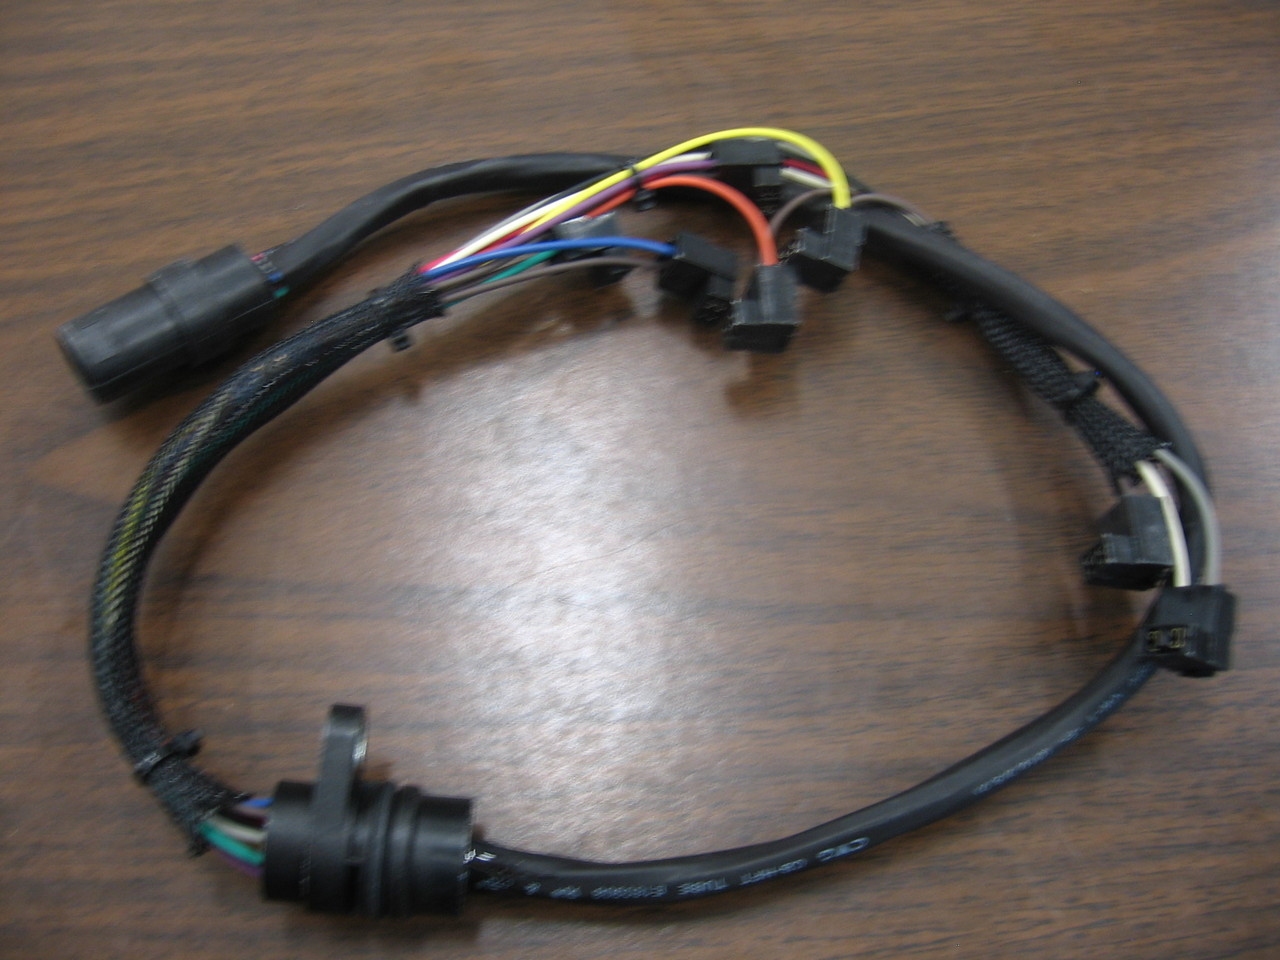 medium resolution of 4r100 internal wire harness wiring diagram data val 4r100 internal wire harness source ford e4od 4r100 solenoid connector repair